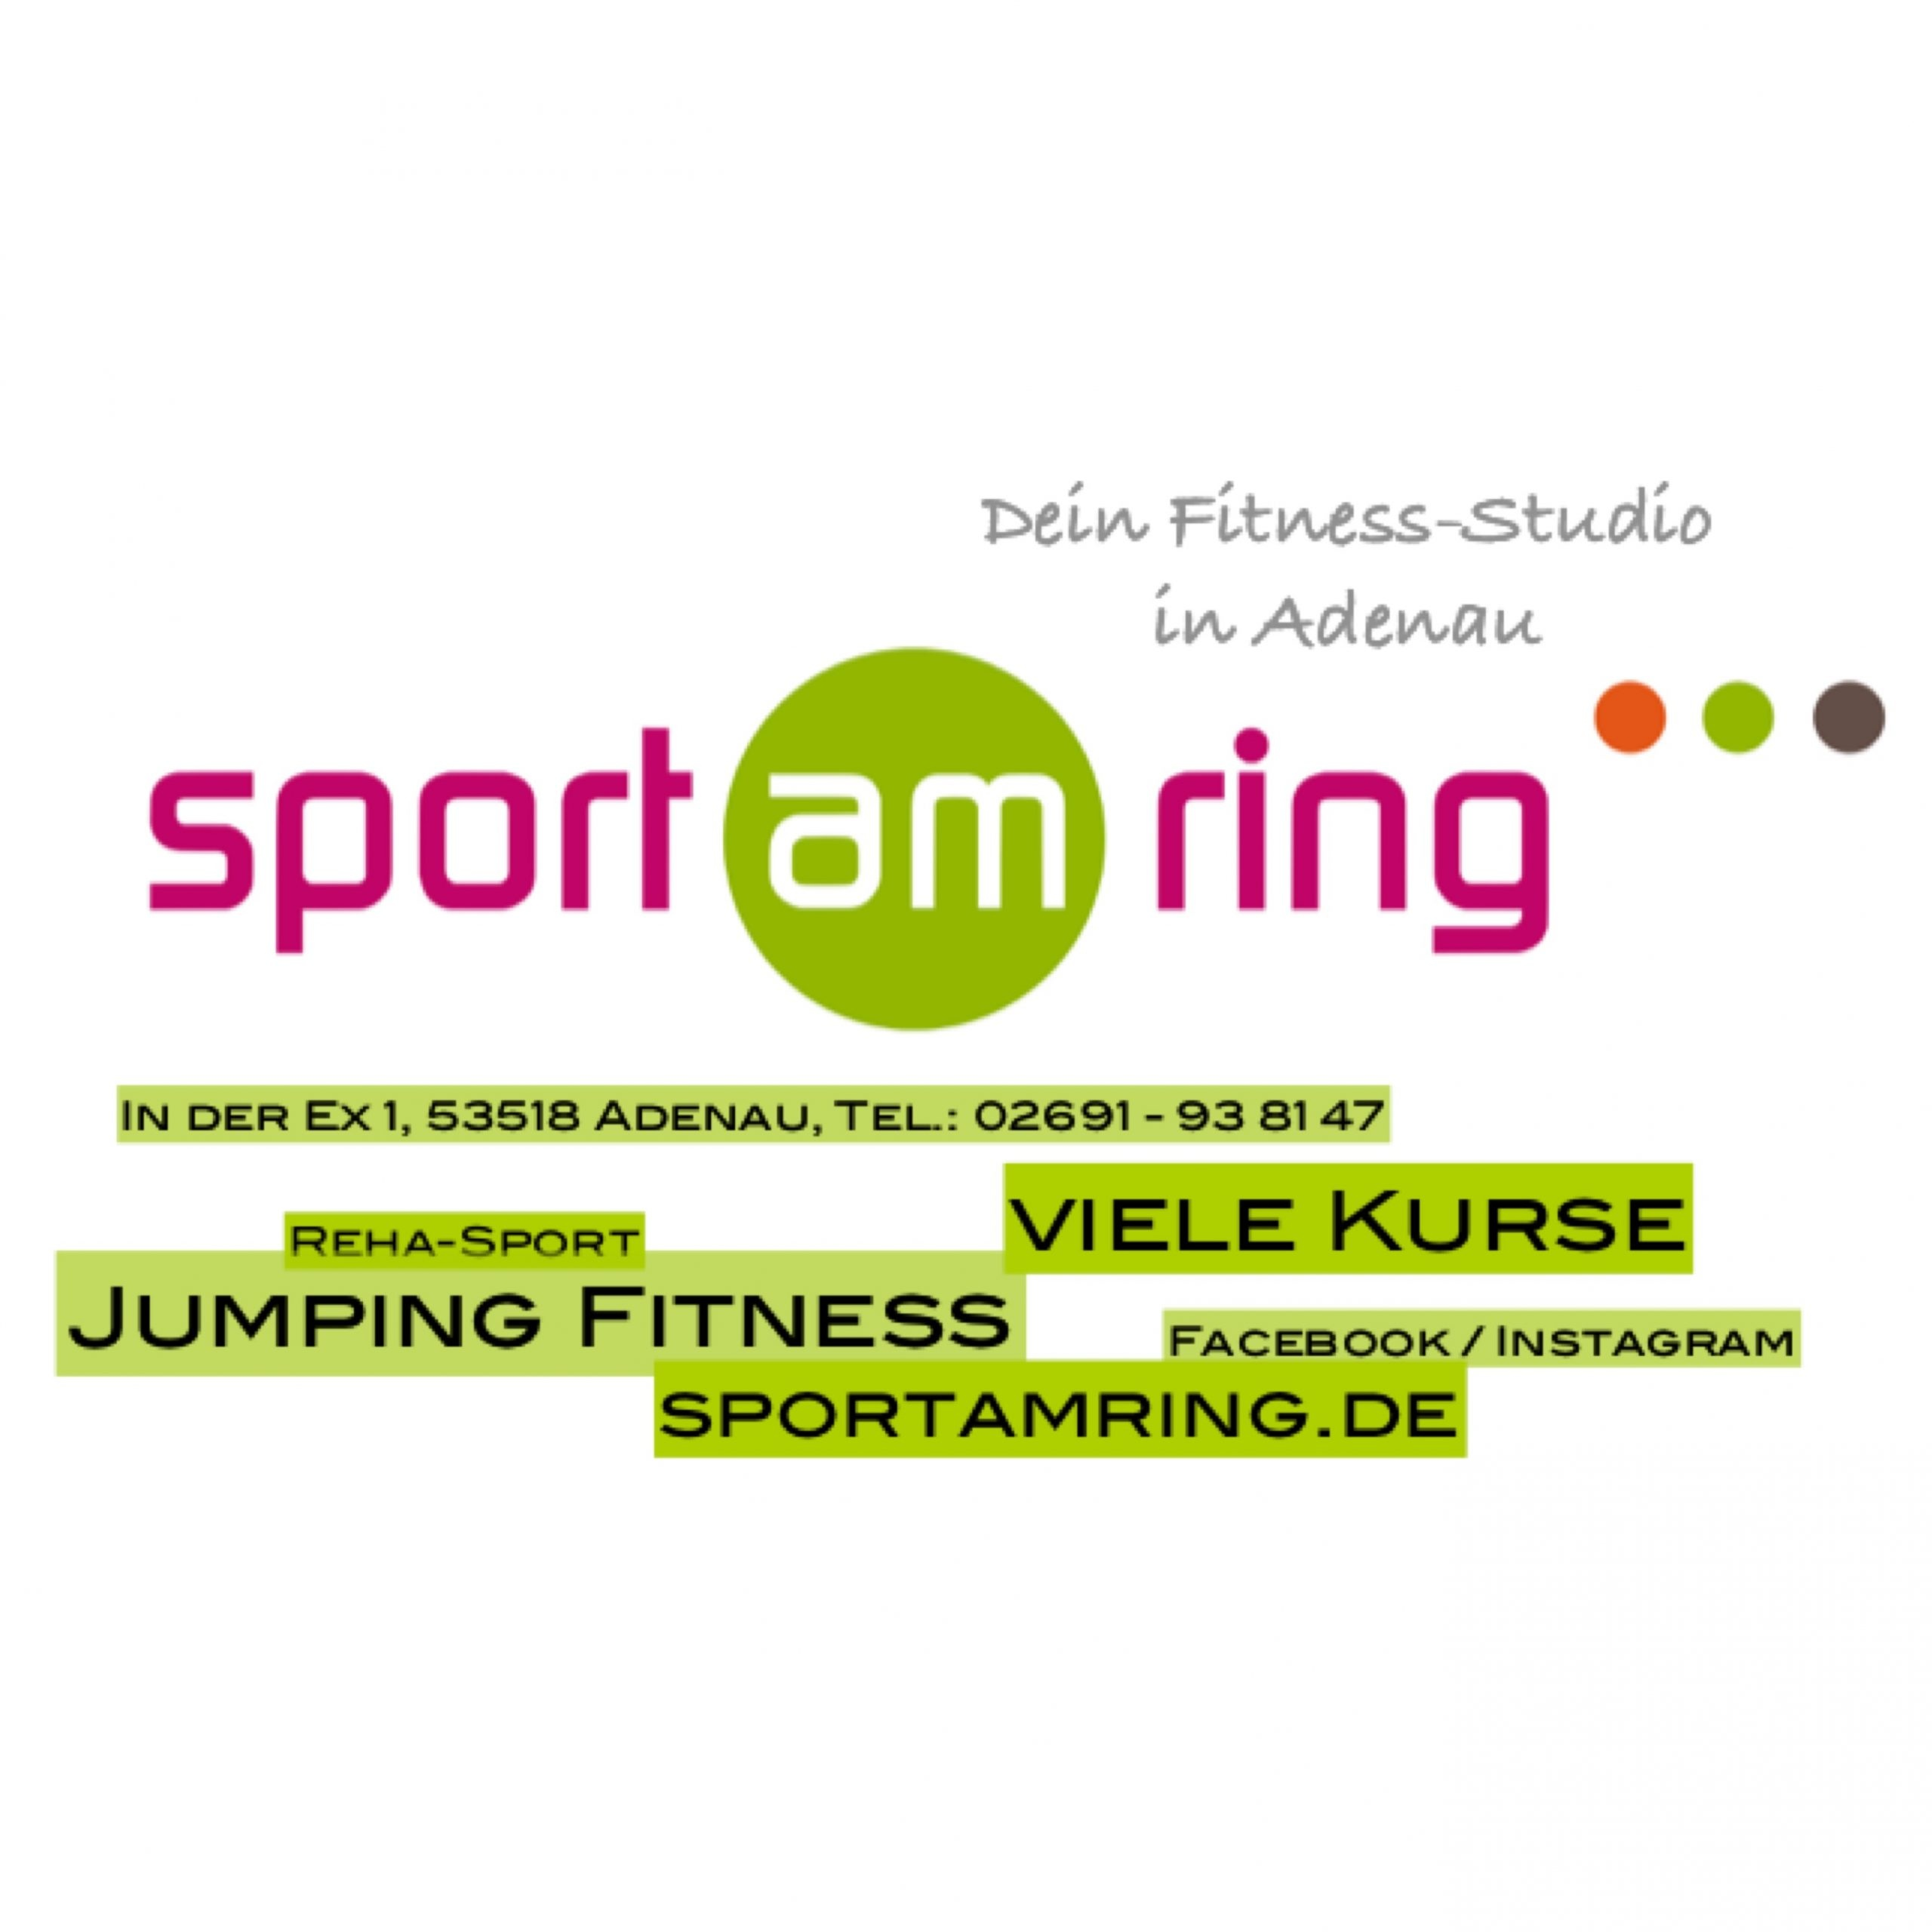 sport am ring neu scaled